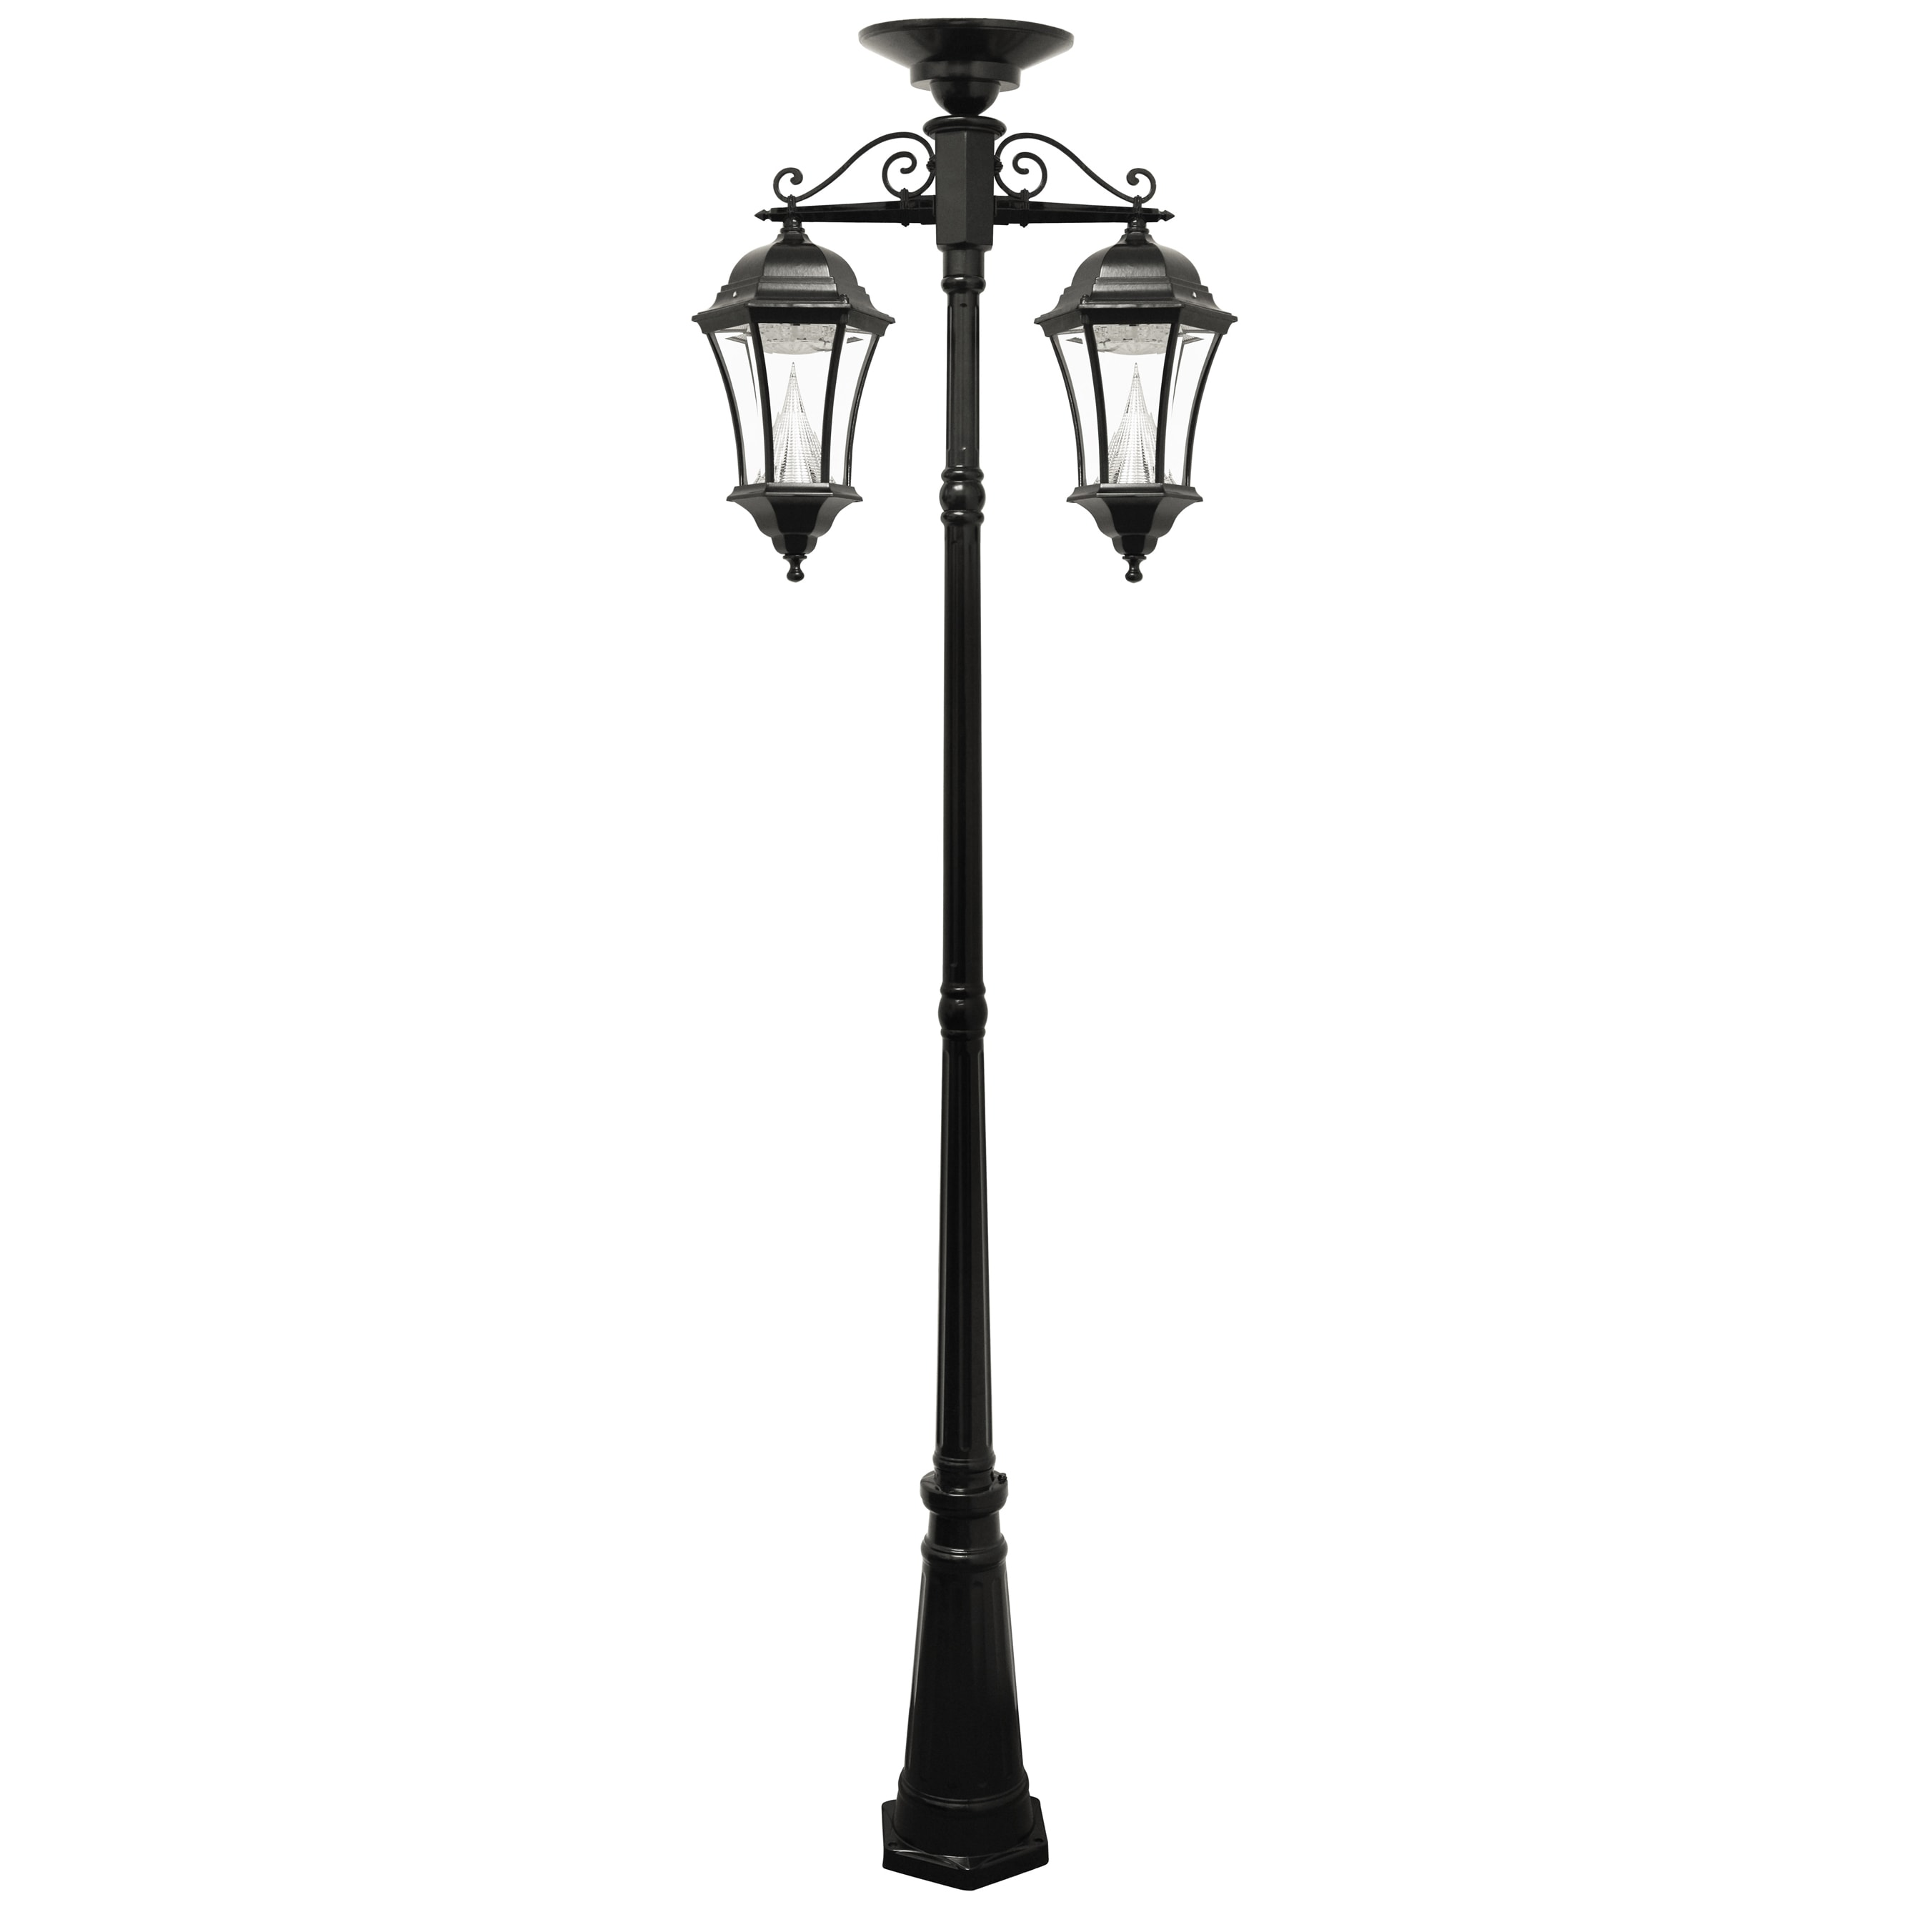 with post dk lights bronze ideas lamp solar h excellent remodeling outdoor pole planter lighting homezanin style design image decorating pleasing zngqmh enthralling andover progress